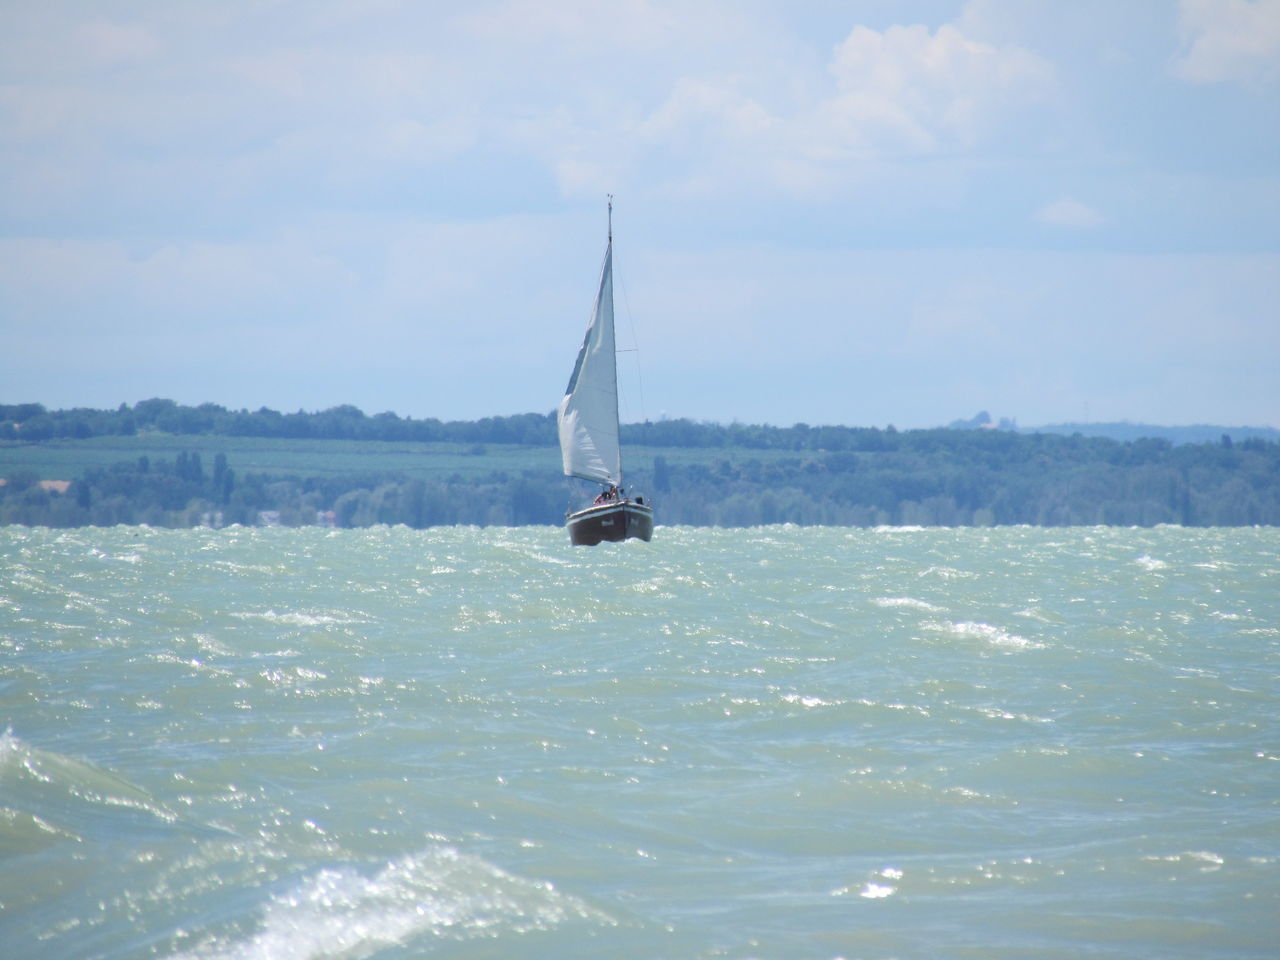 sea, waterfront, sky, water, sailboat, day, cloud - sky, nautical vessel, nature, outdoors, mast, sailing, transportation, real people, men, beauty in nature, scenics, sport, one person, scenery, people